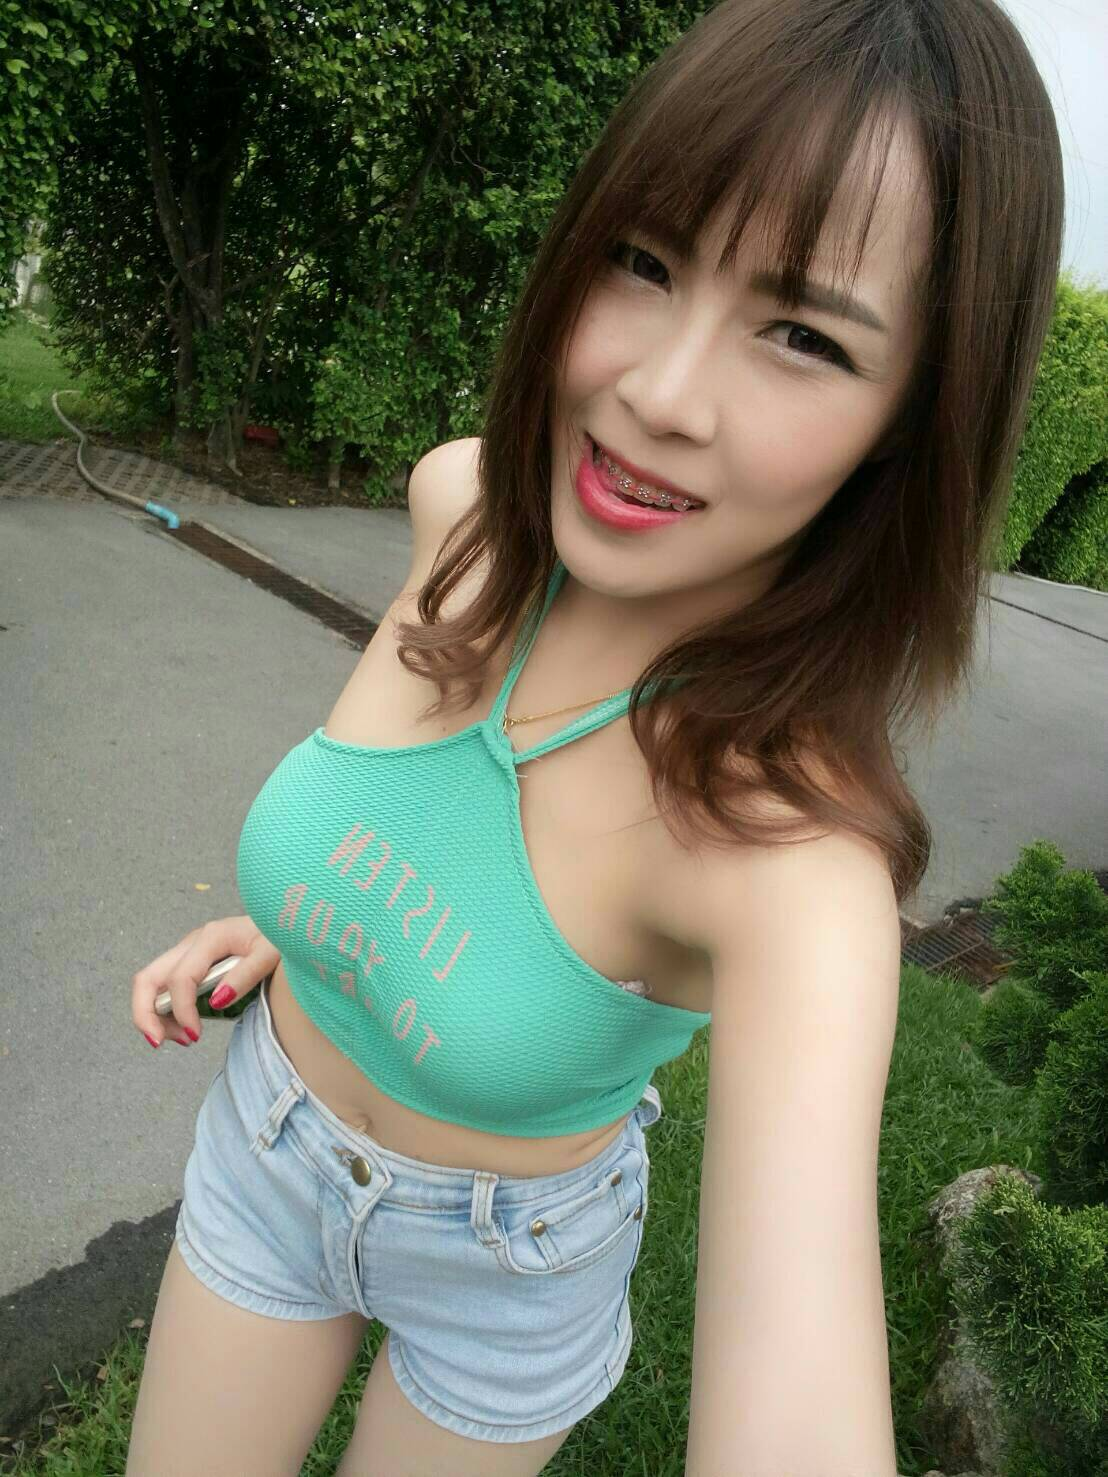 thai singles escort girl thai